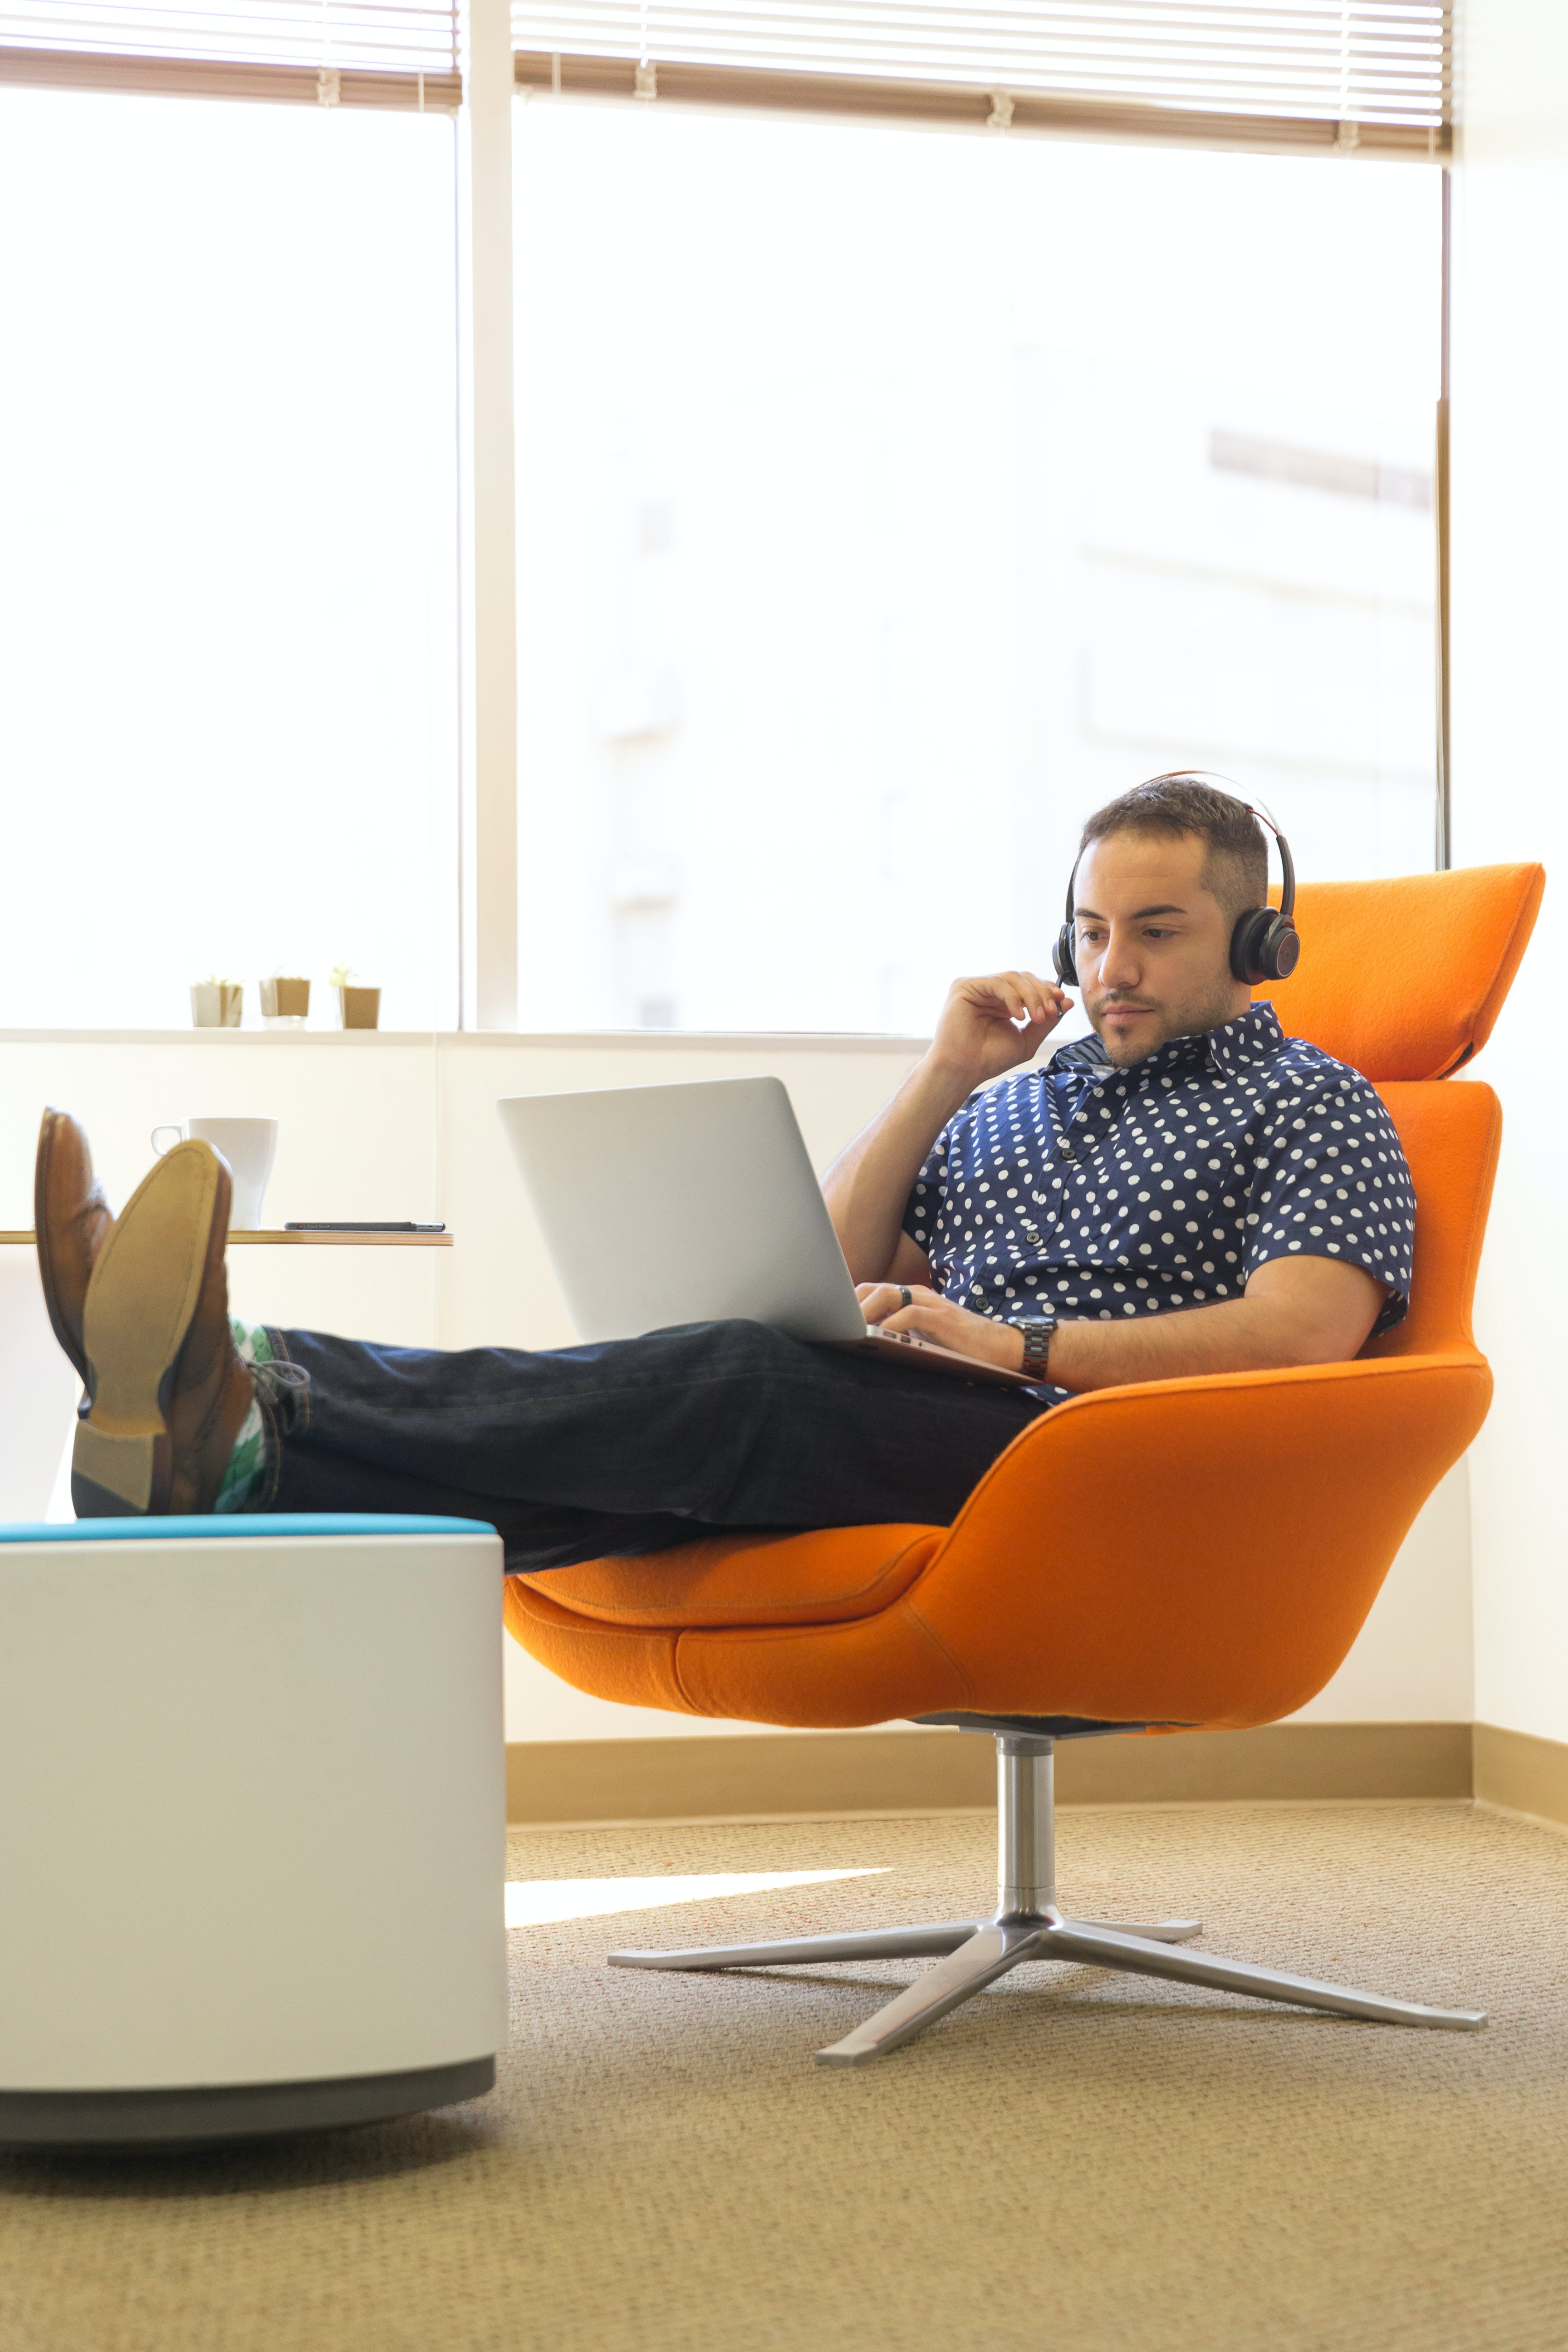 Man Sitting On Couch 183 Free Stock Photo